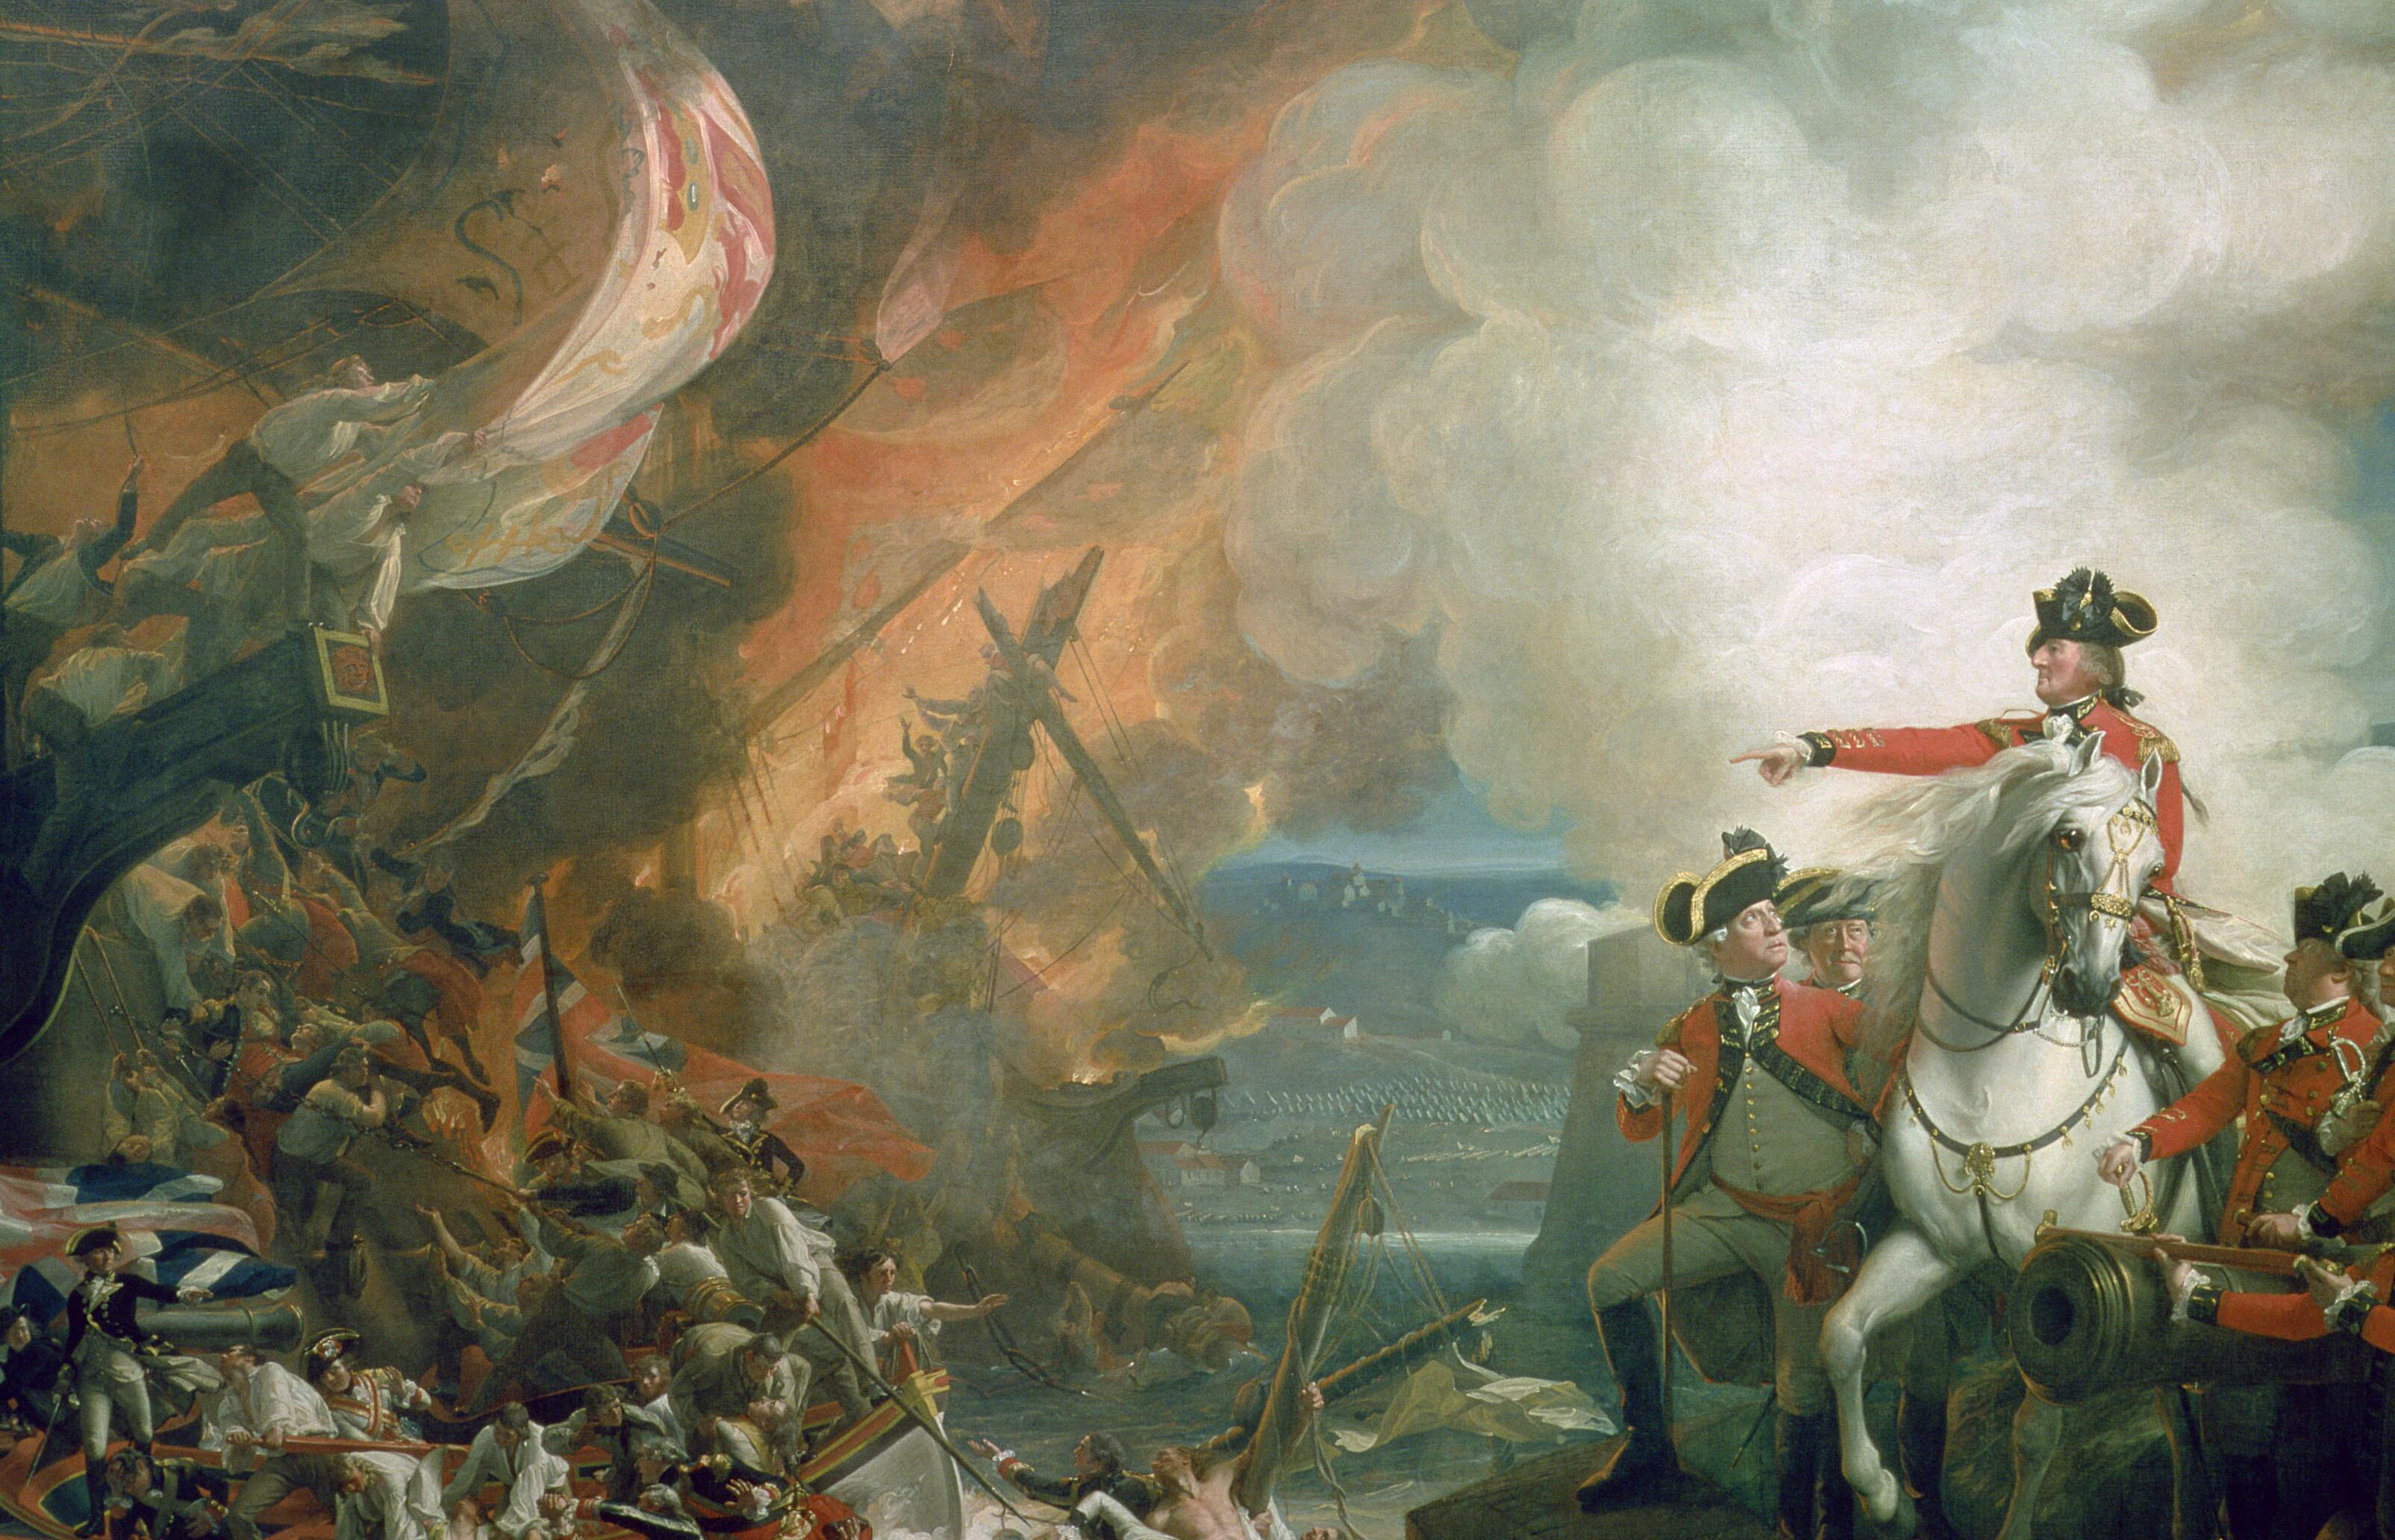 John Singleton Copley, <i>The Siege of Gibraltar</i>, 1791, oil on canvas, 544 x 754 cm. Collection of Guildhall Art Gallery, City of London (43). Digital image courtesy of Guildhall Art Gallery, City of London | Bridgeman Images (All rights reserved).